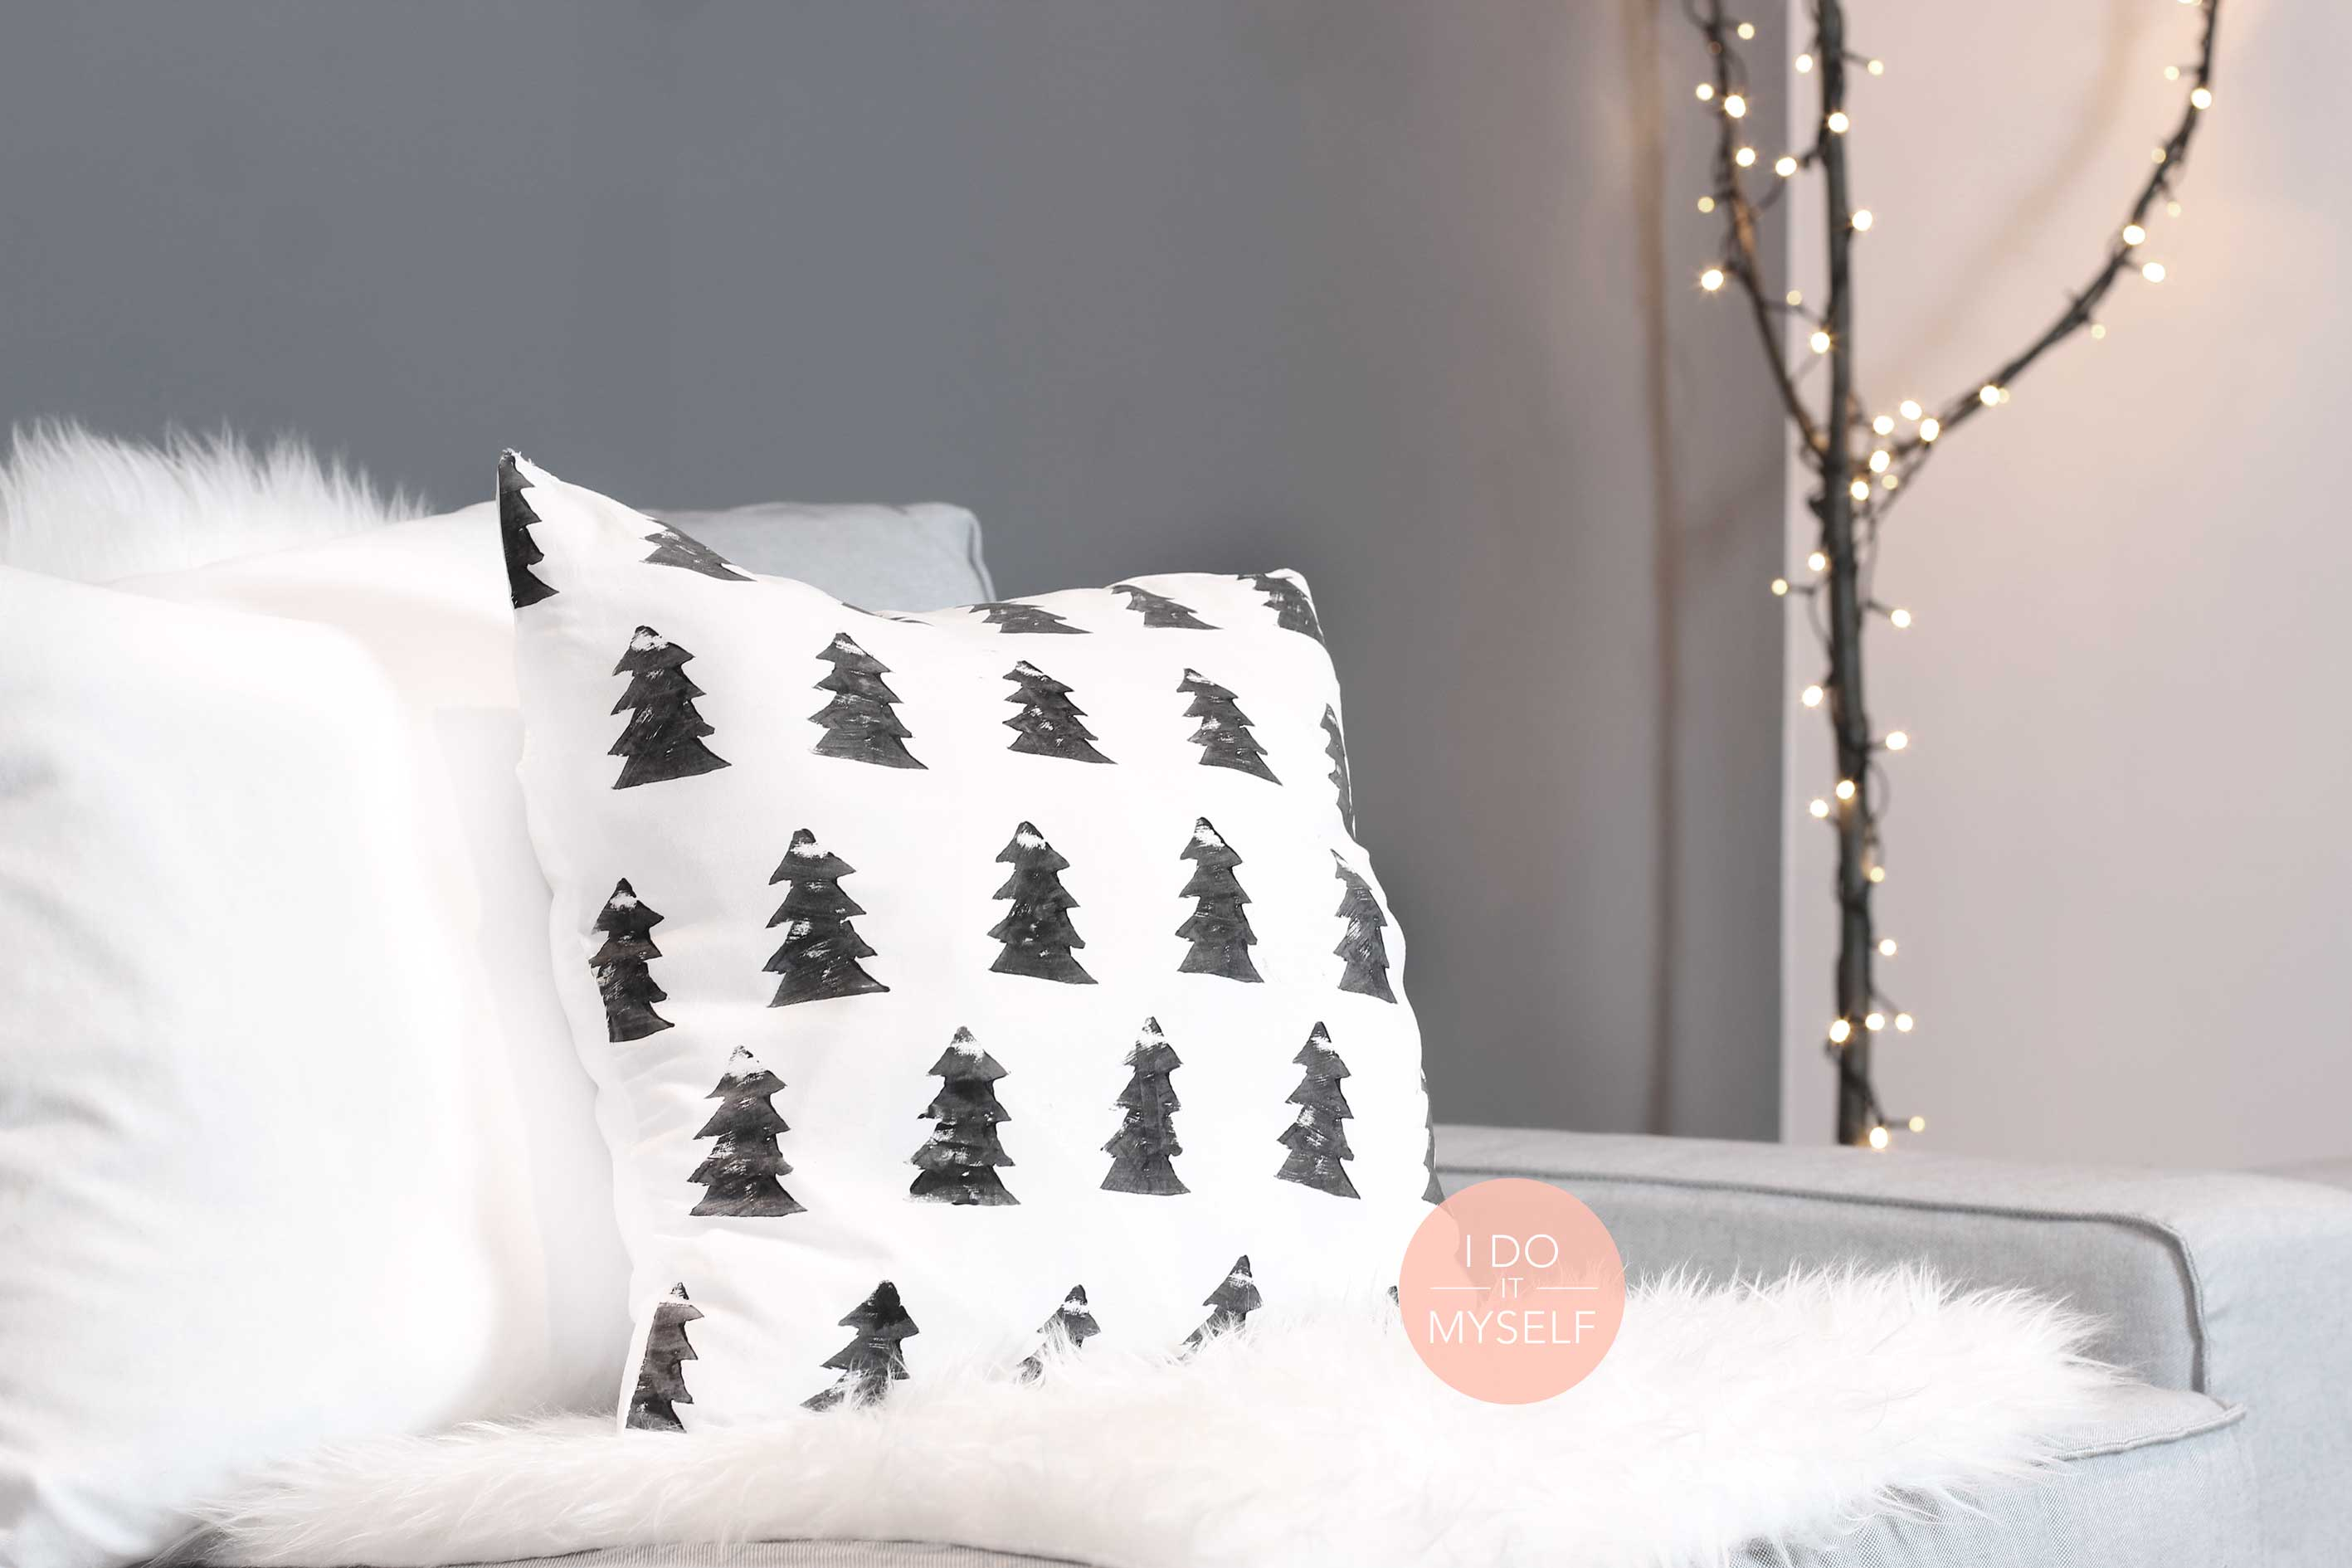 diy 41 le coussin sapin r alis avec des mat riaux de. Black Bedroom Furniture Sets. Home Design Ideas